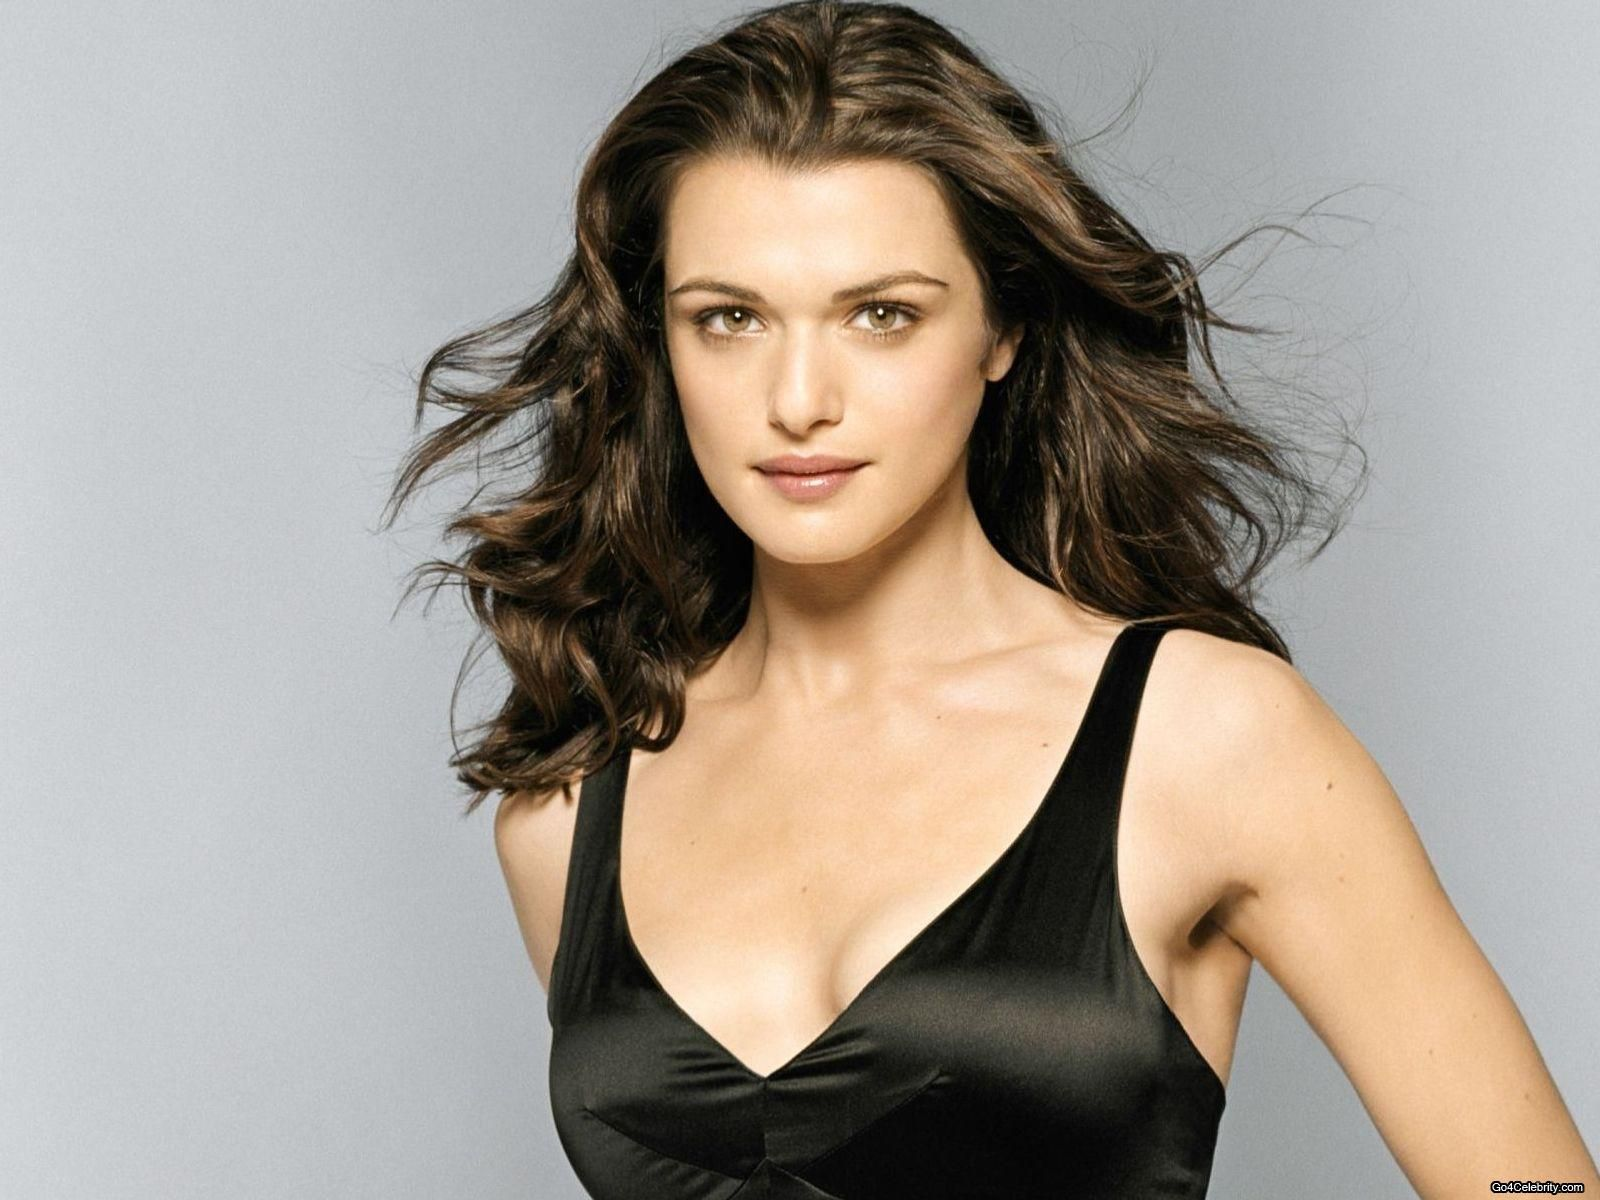 images Rachel Weisz (born 1970 (naturalized American citizen)